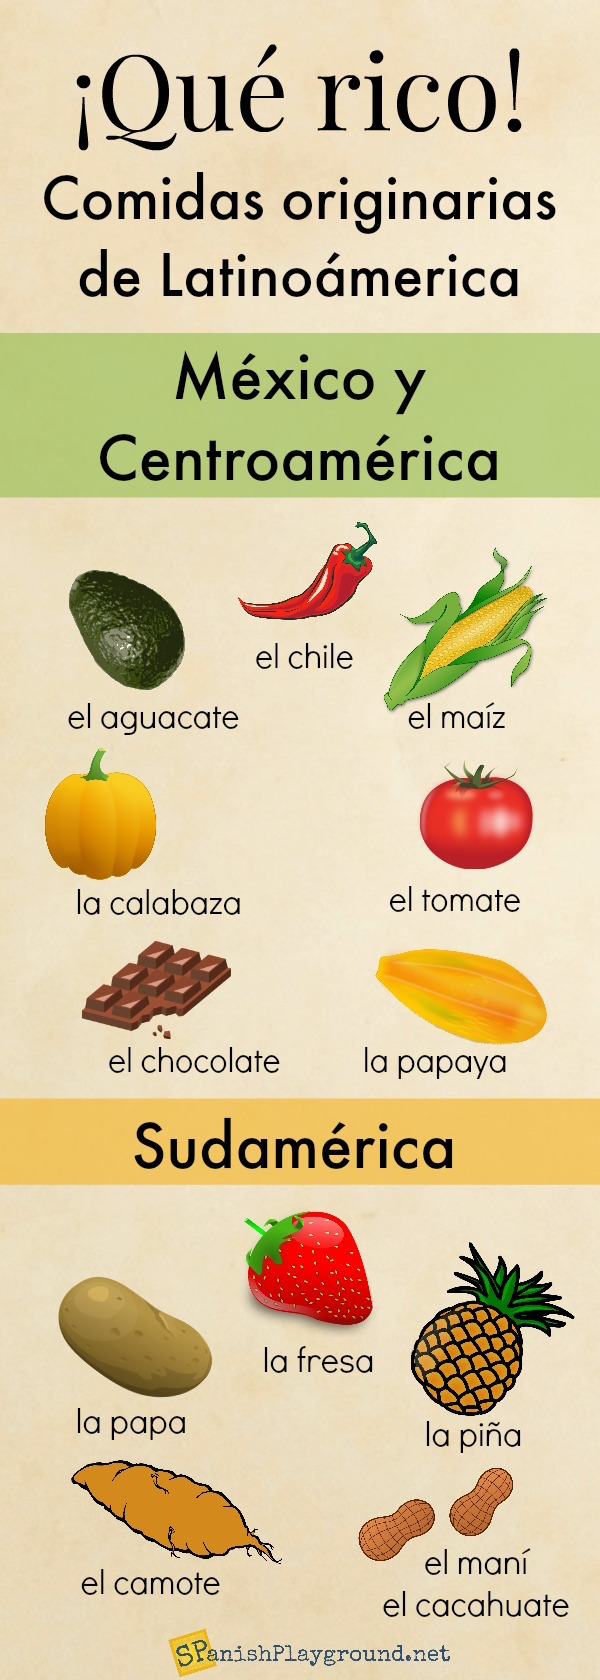 Use this food from Latin America infographic to practice vocabualry and learn about culture.